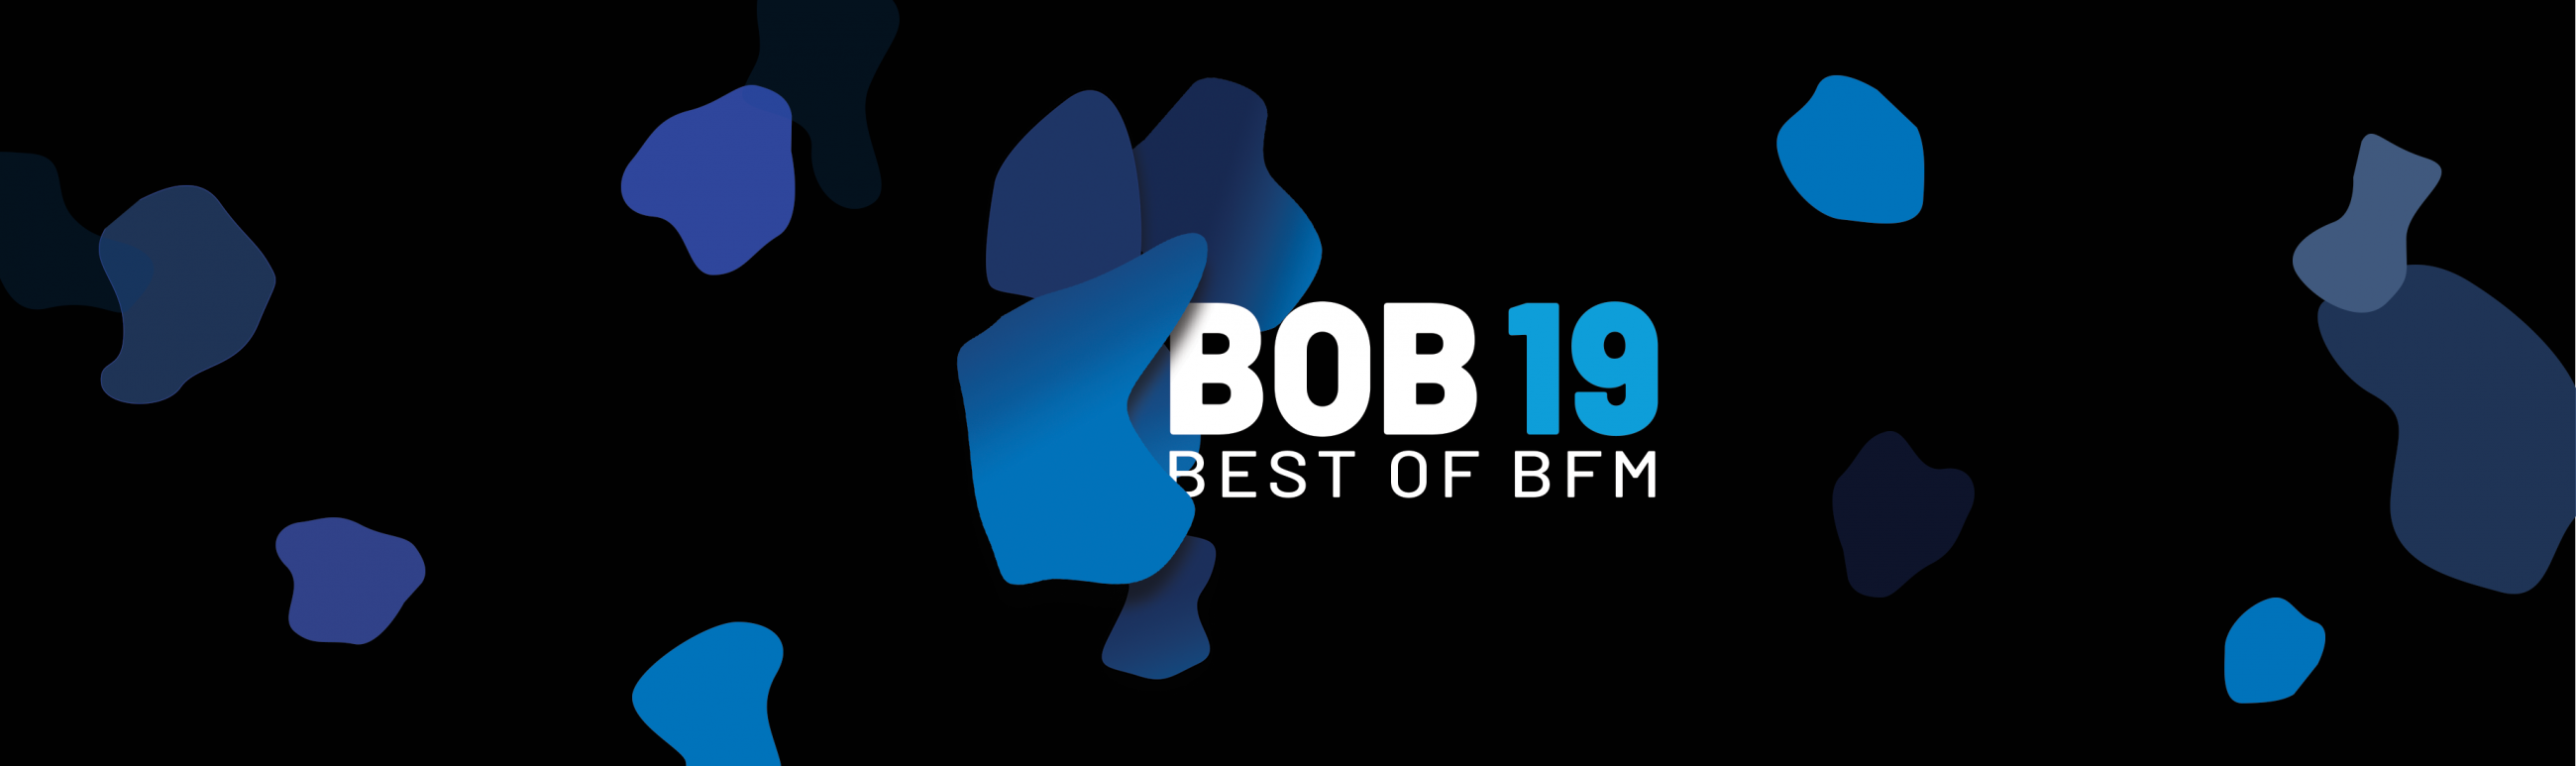 Best of BFM 2019